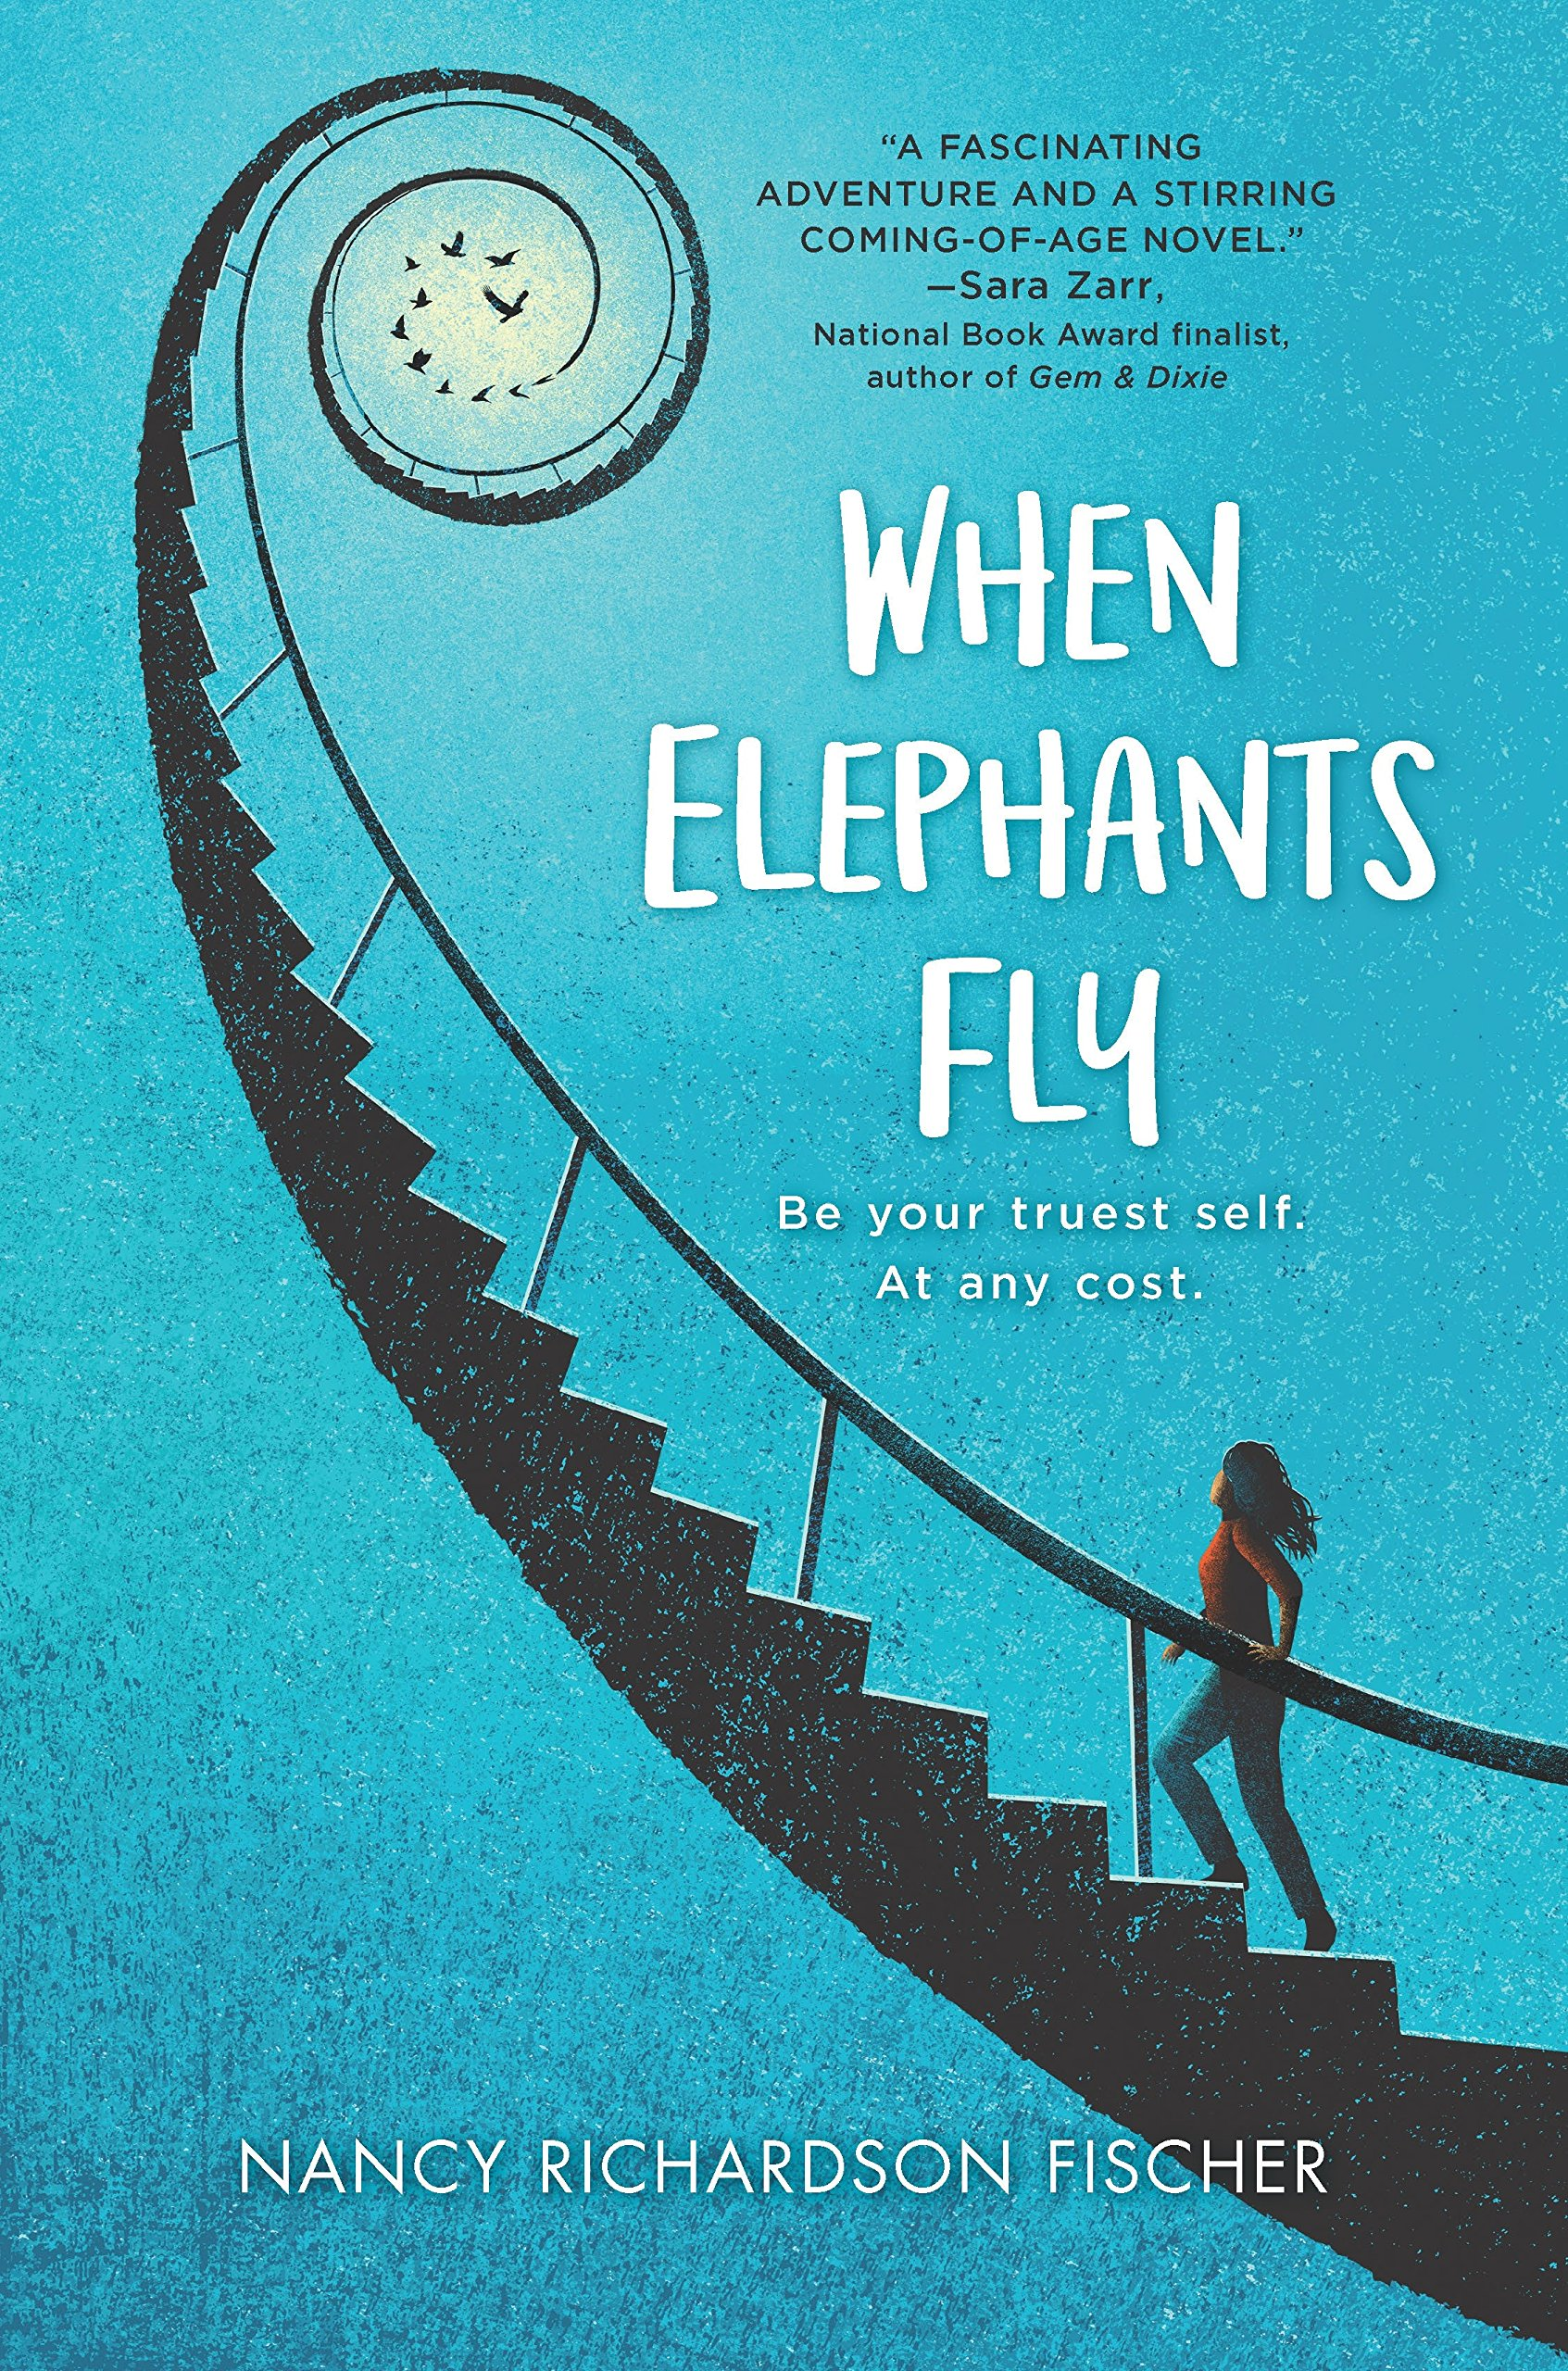 Image result for when elephants fly nancy richardson fischer